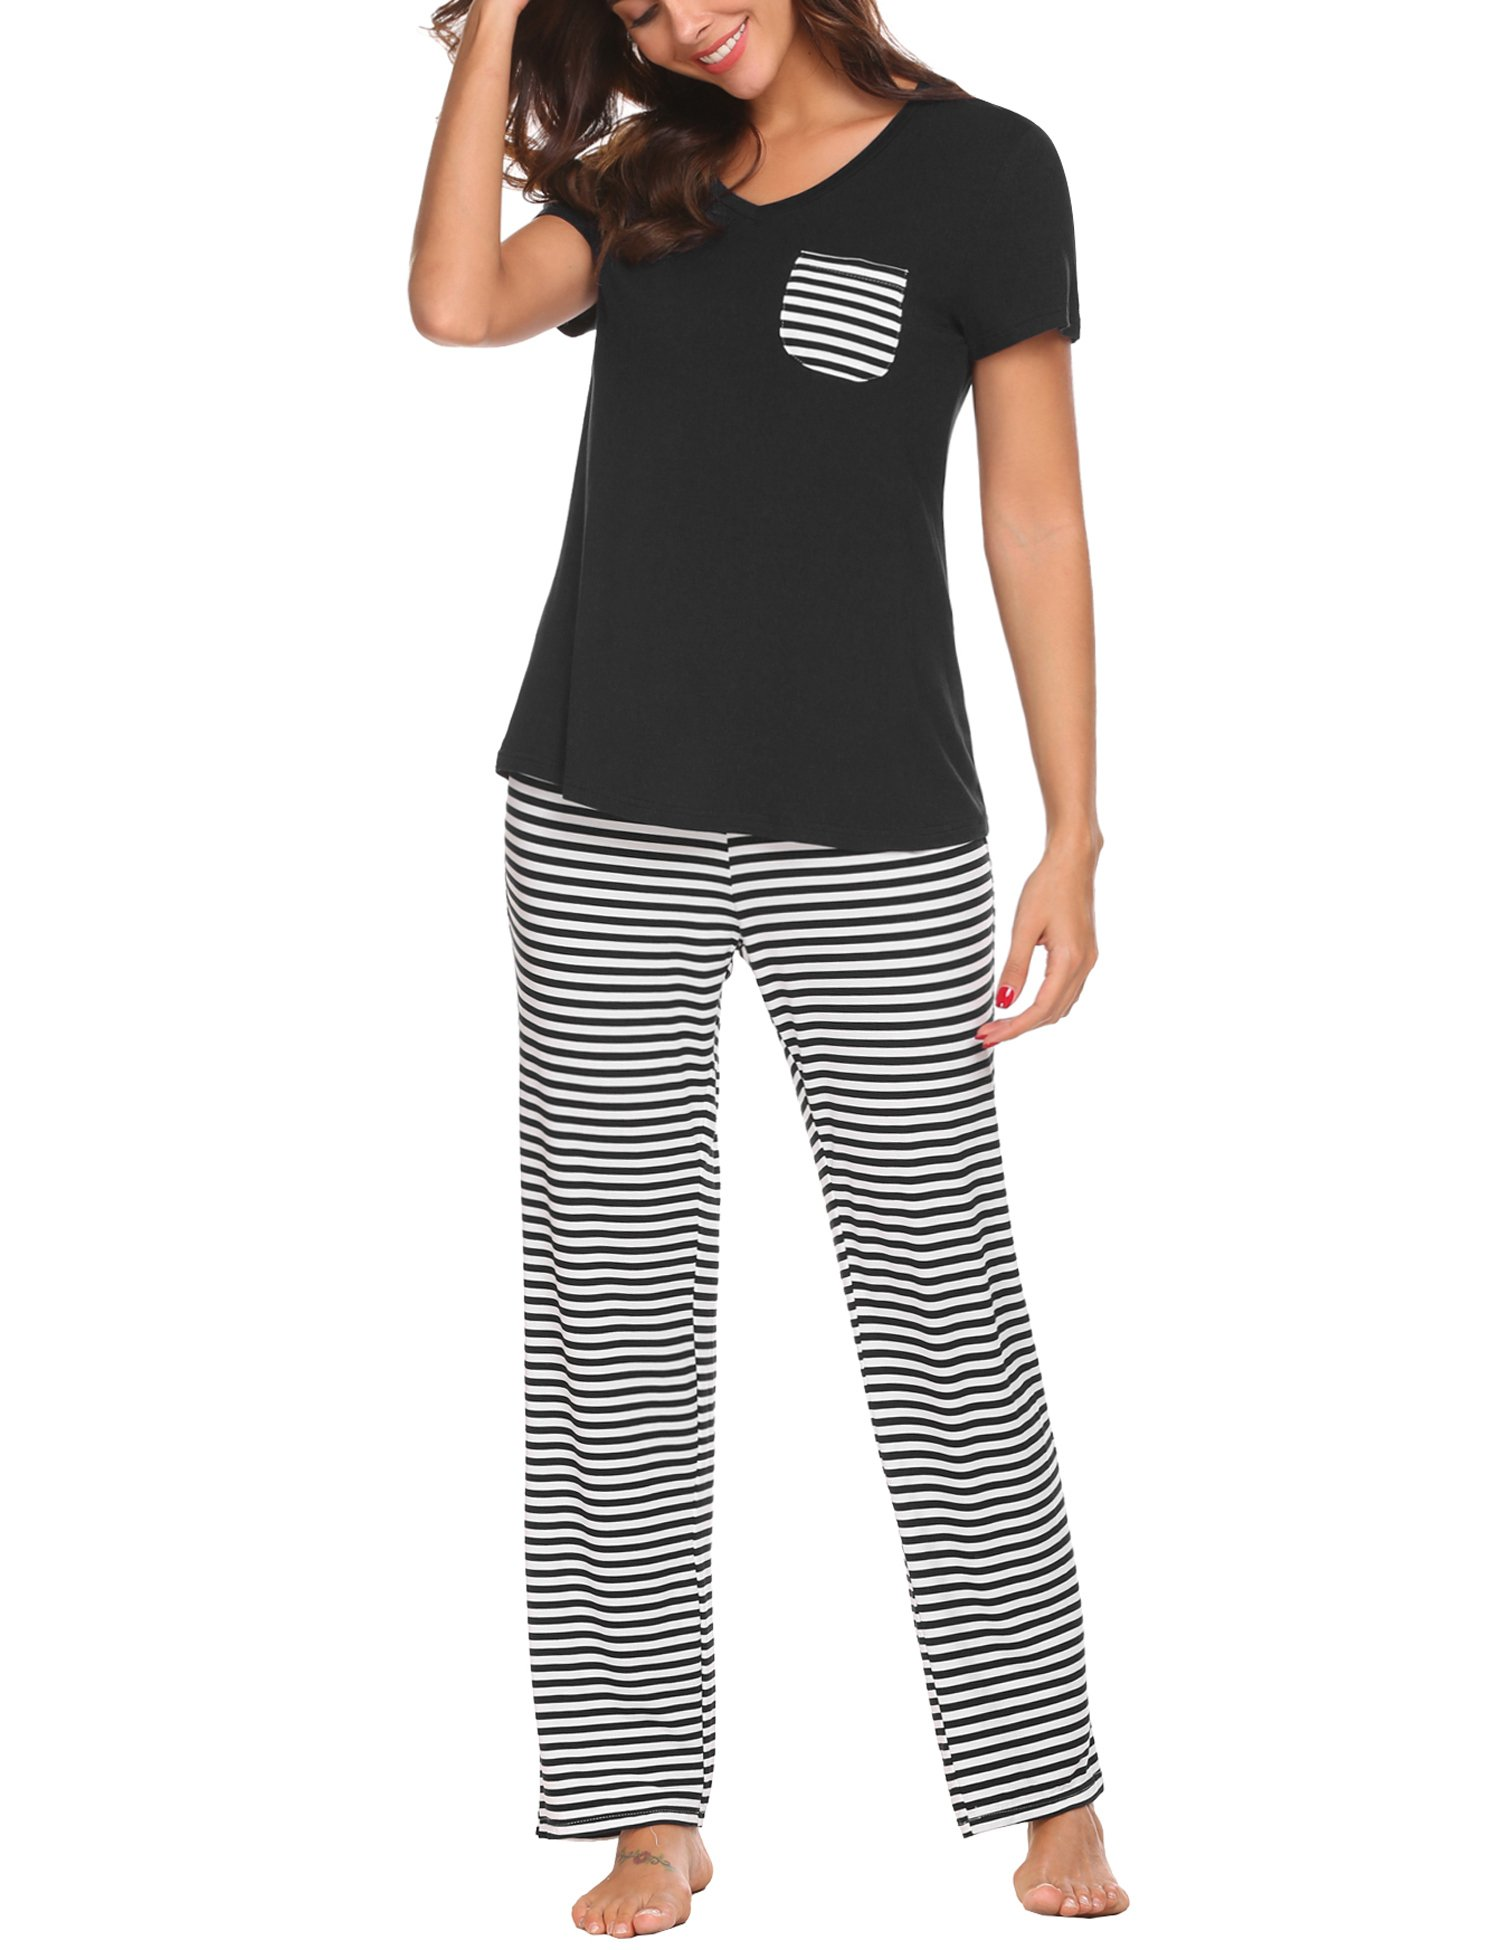 Hotouch Womens Pajama Set Flattering Striped Pattern Sleep Sets Black M by Hotouch